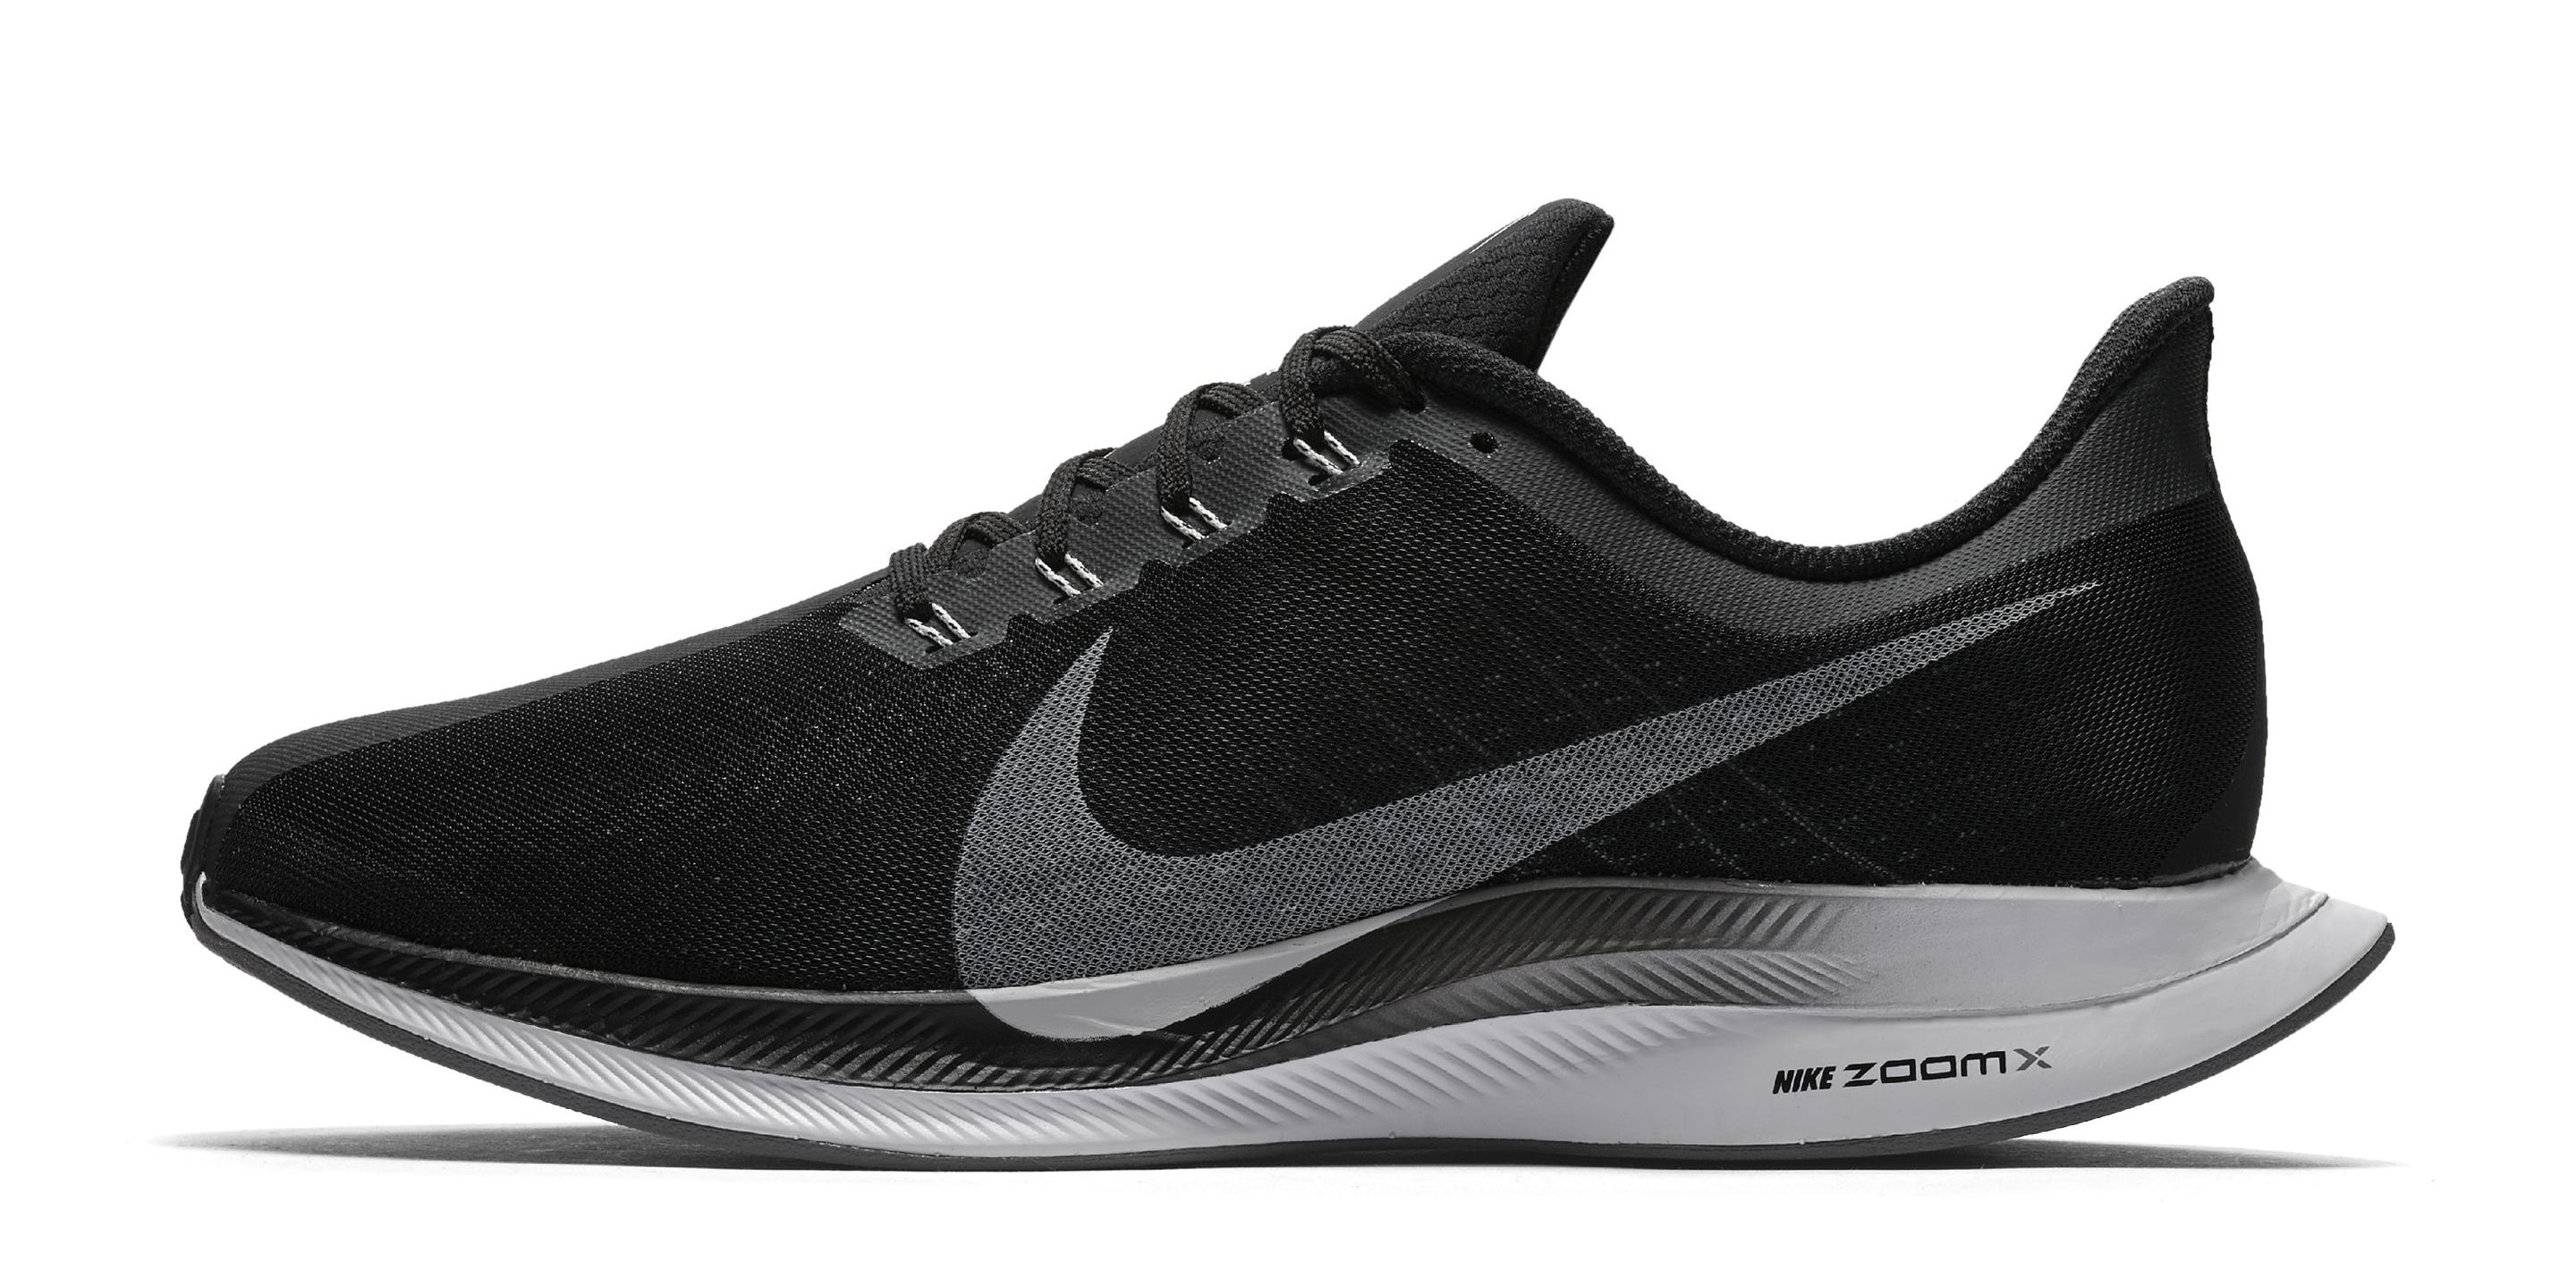 dde75b2275 Best Nike Running Shoes | Nike Shoe Reviews 2019